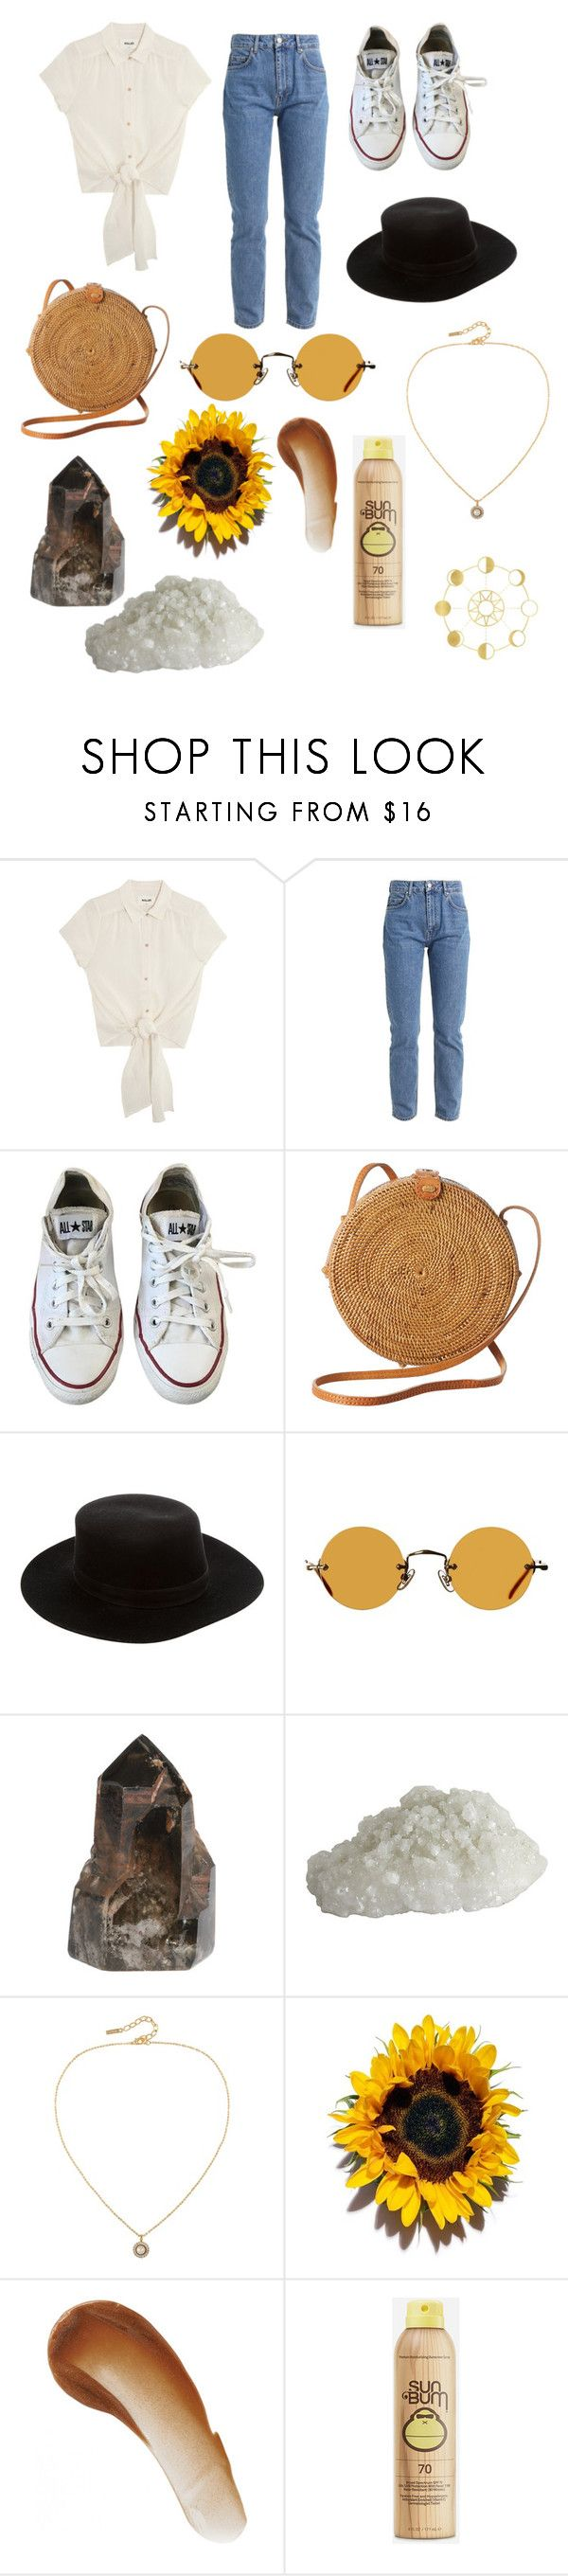 """Fangirl"" by emmylong04 ❤ liked on Polyvore featuring Converse, Faithfull, Janessa Leone, Hakusan, Susan Caplan Vintage, This Works and Sun Bum"